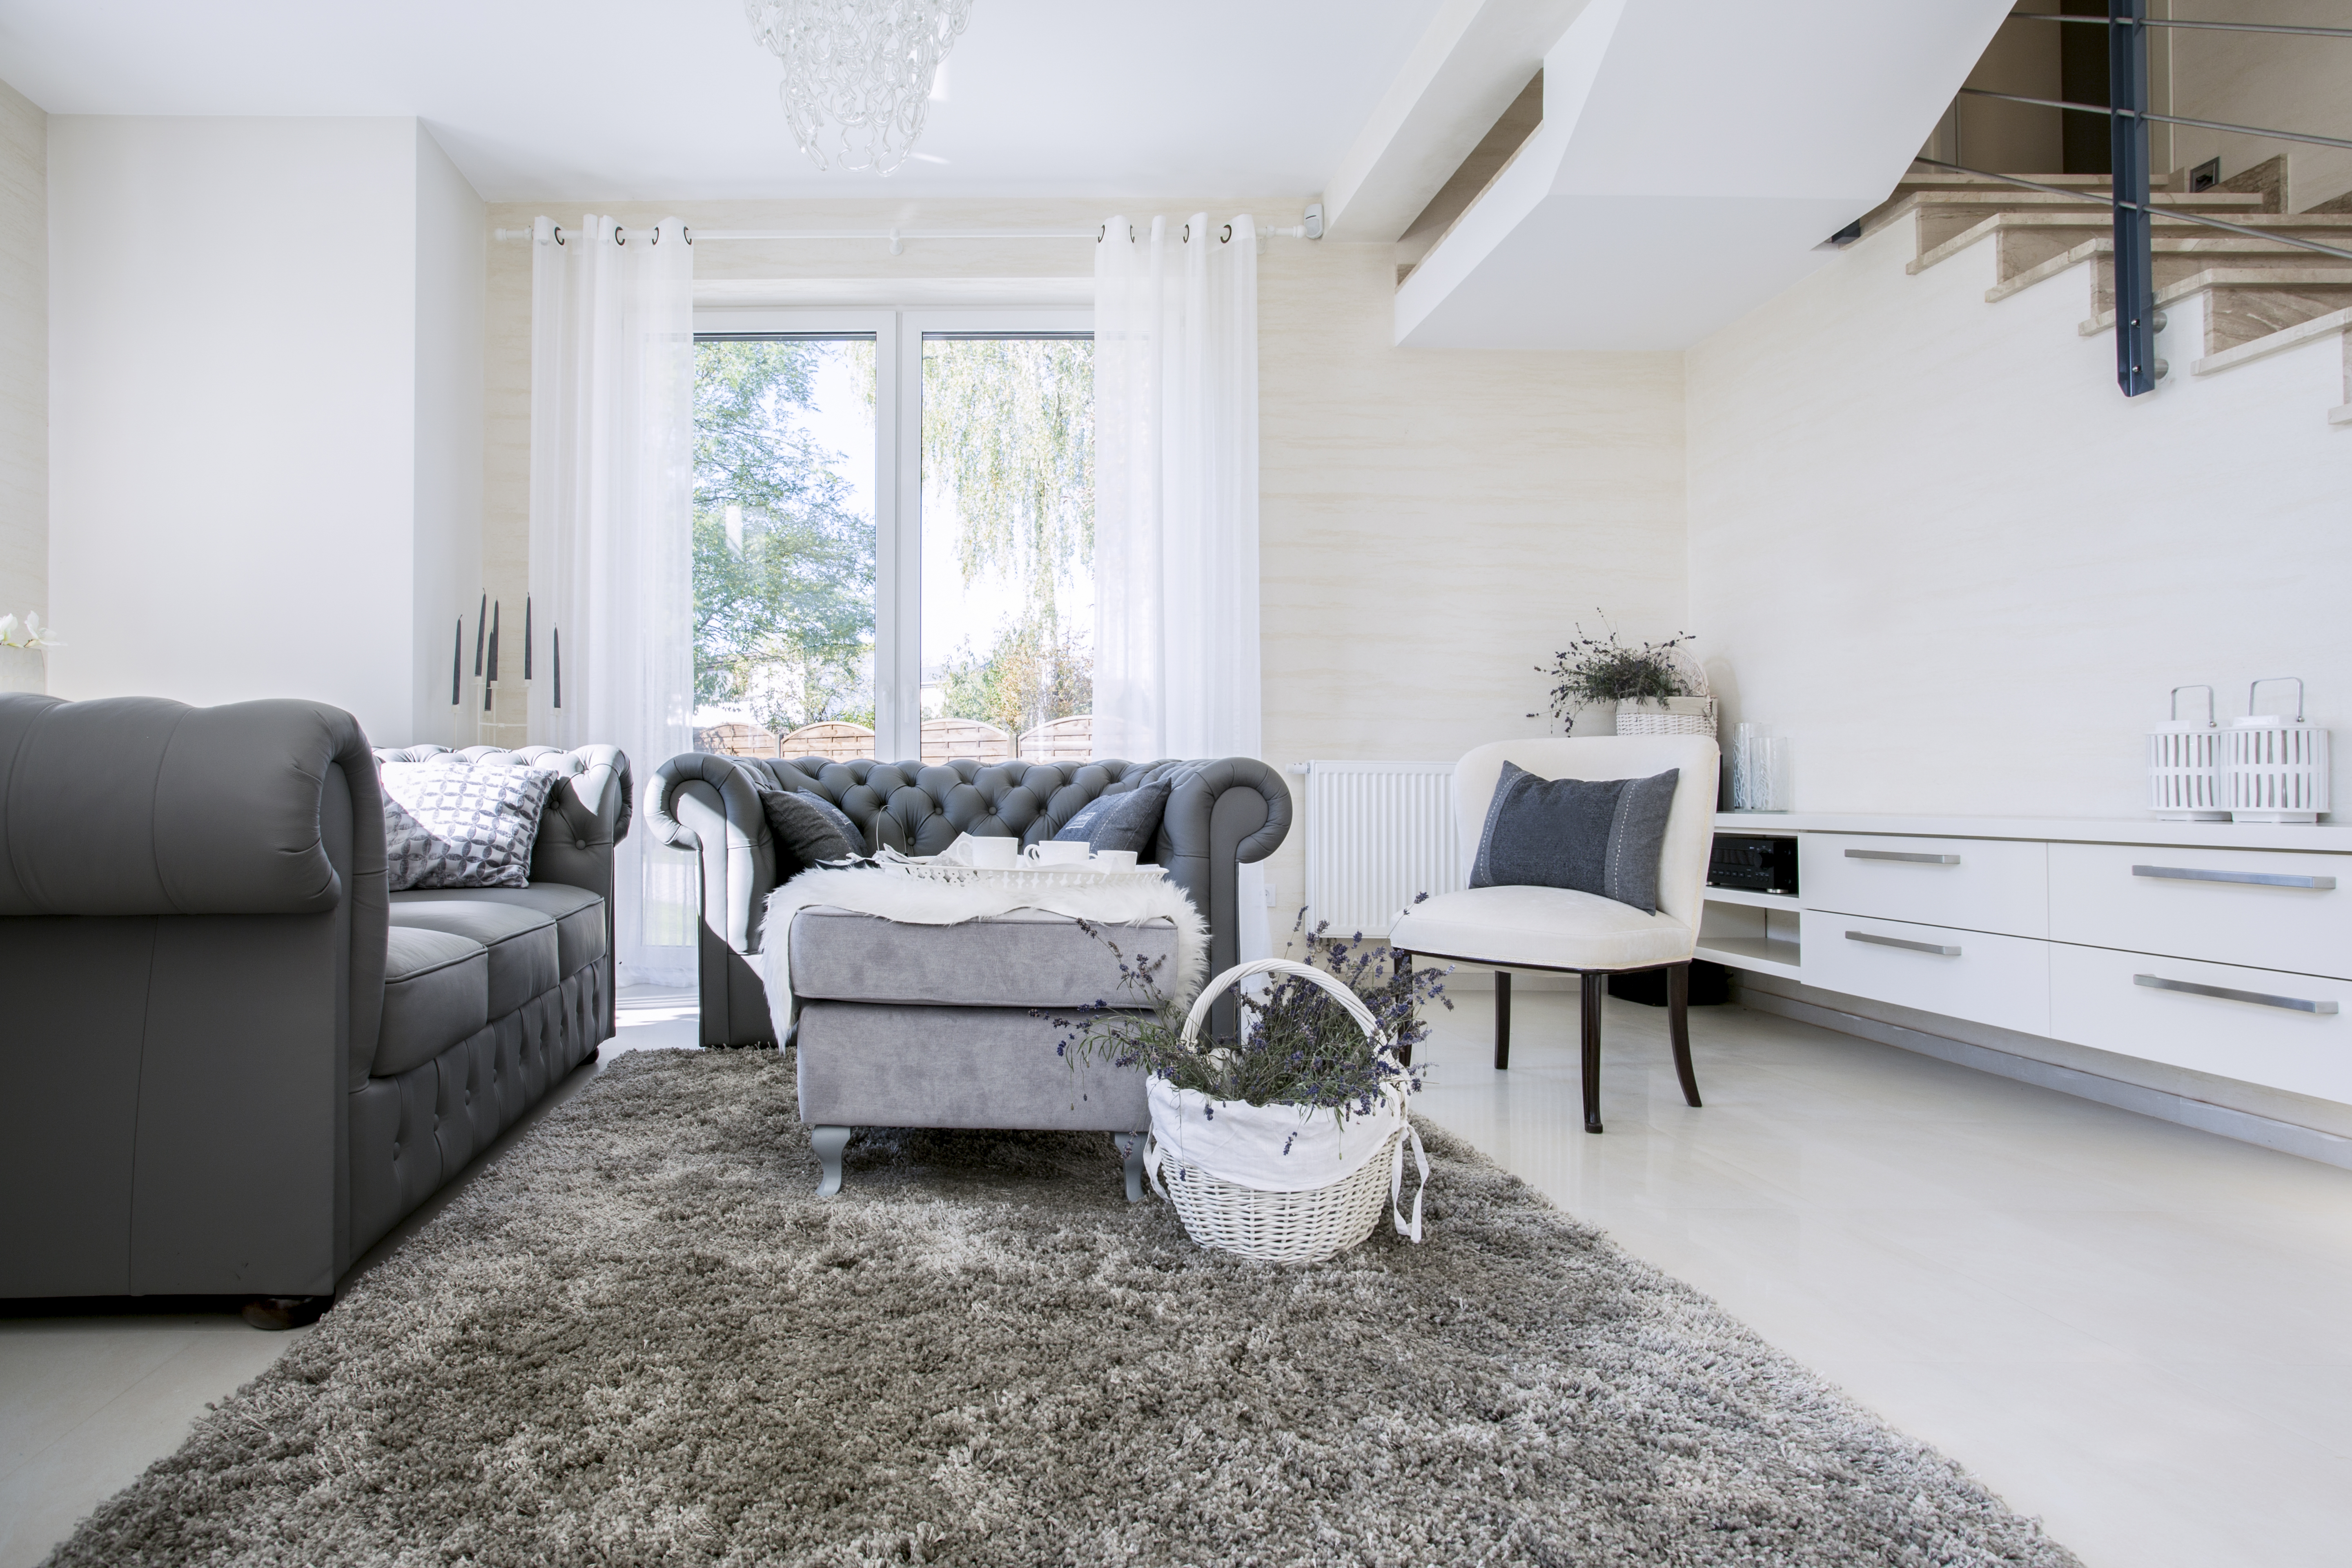 Mixing Different Interior Styles Will Be A Wonderful Decorating Challenge  For You To Take On. Express Your Creativity And Unleash Your Inner Interior  ...